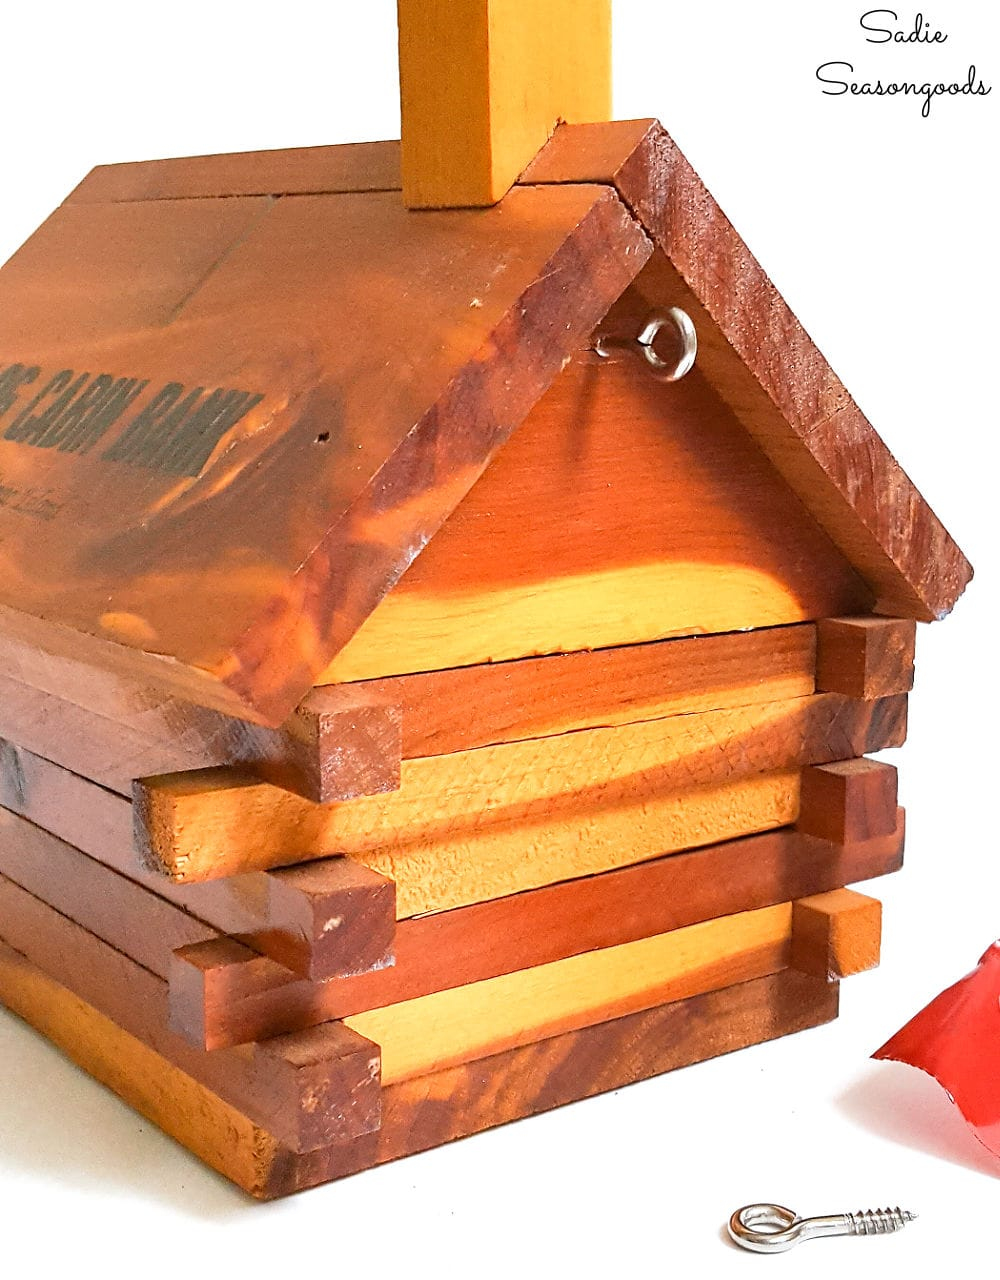 Hanging a log birdhouse from a vintage coin bank